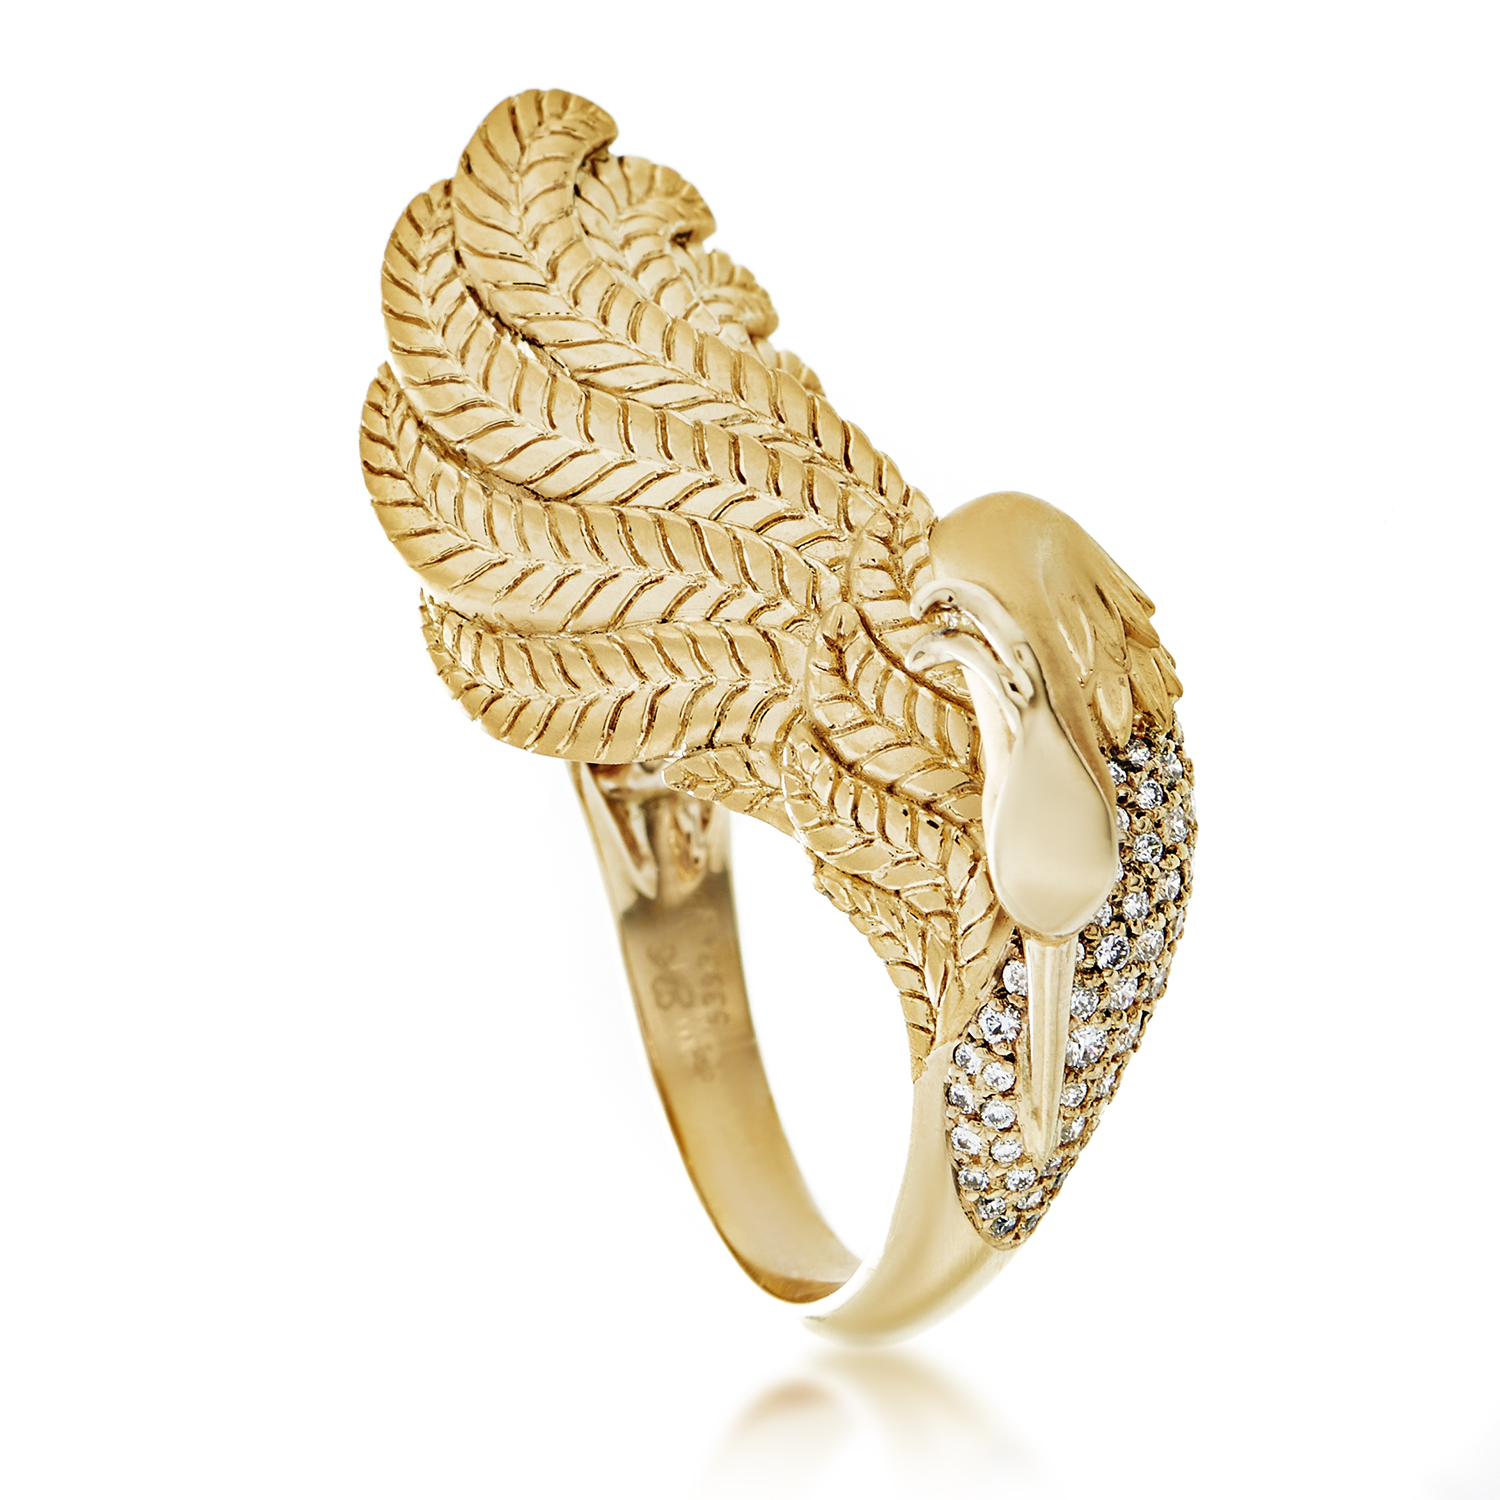 Garzas Medium Women's 18K Yellow Gold Diamond Pave Bird Ring